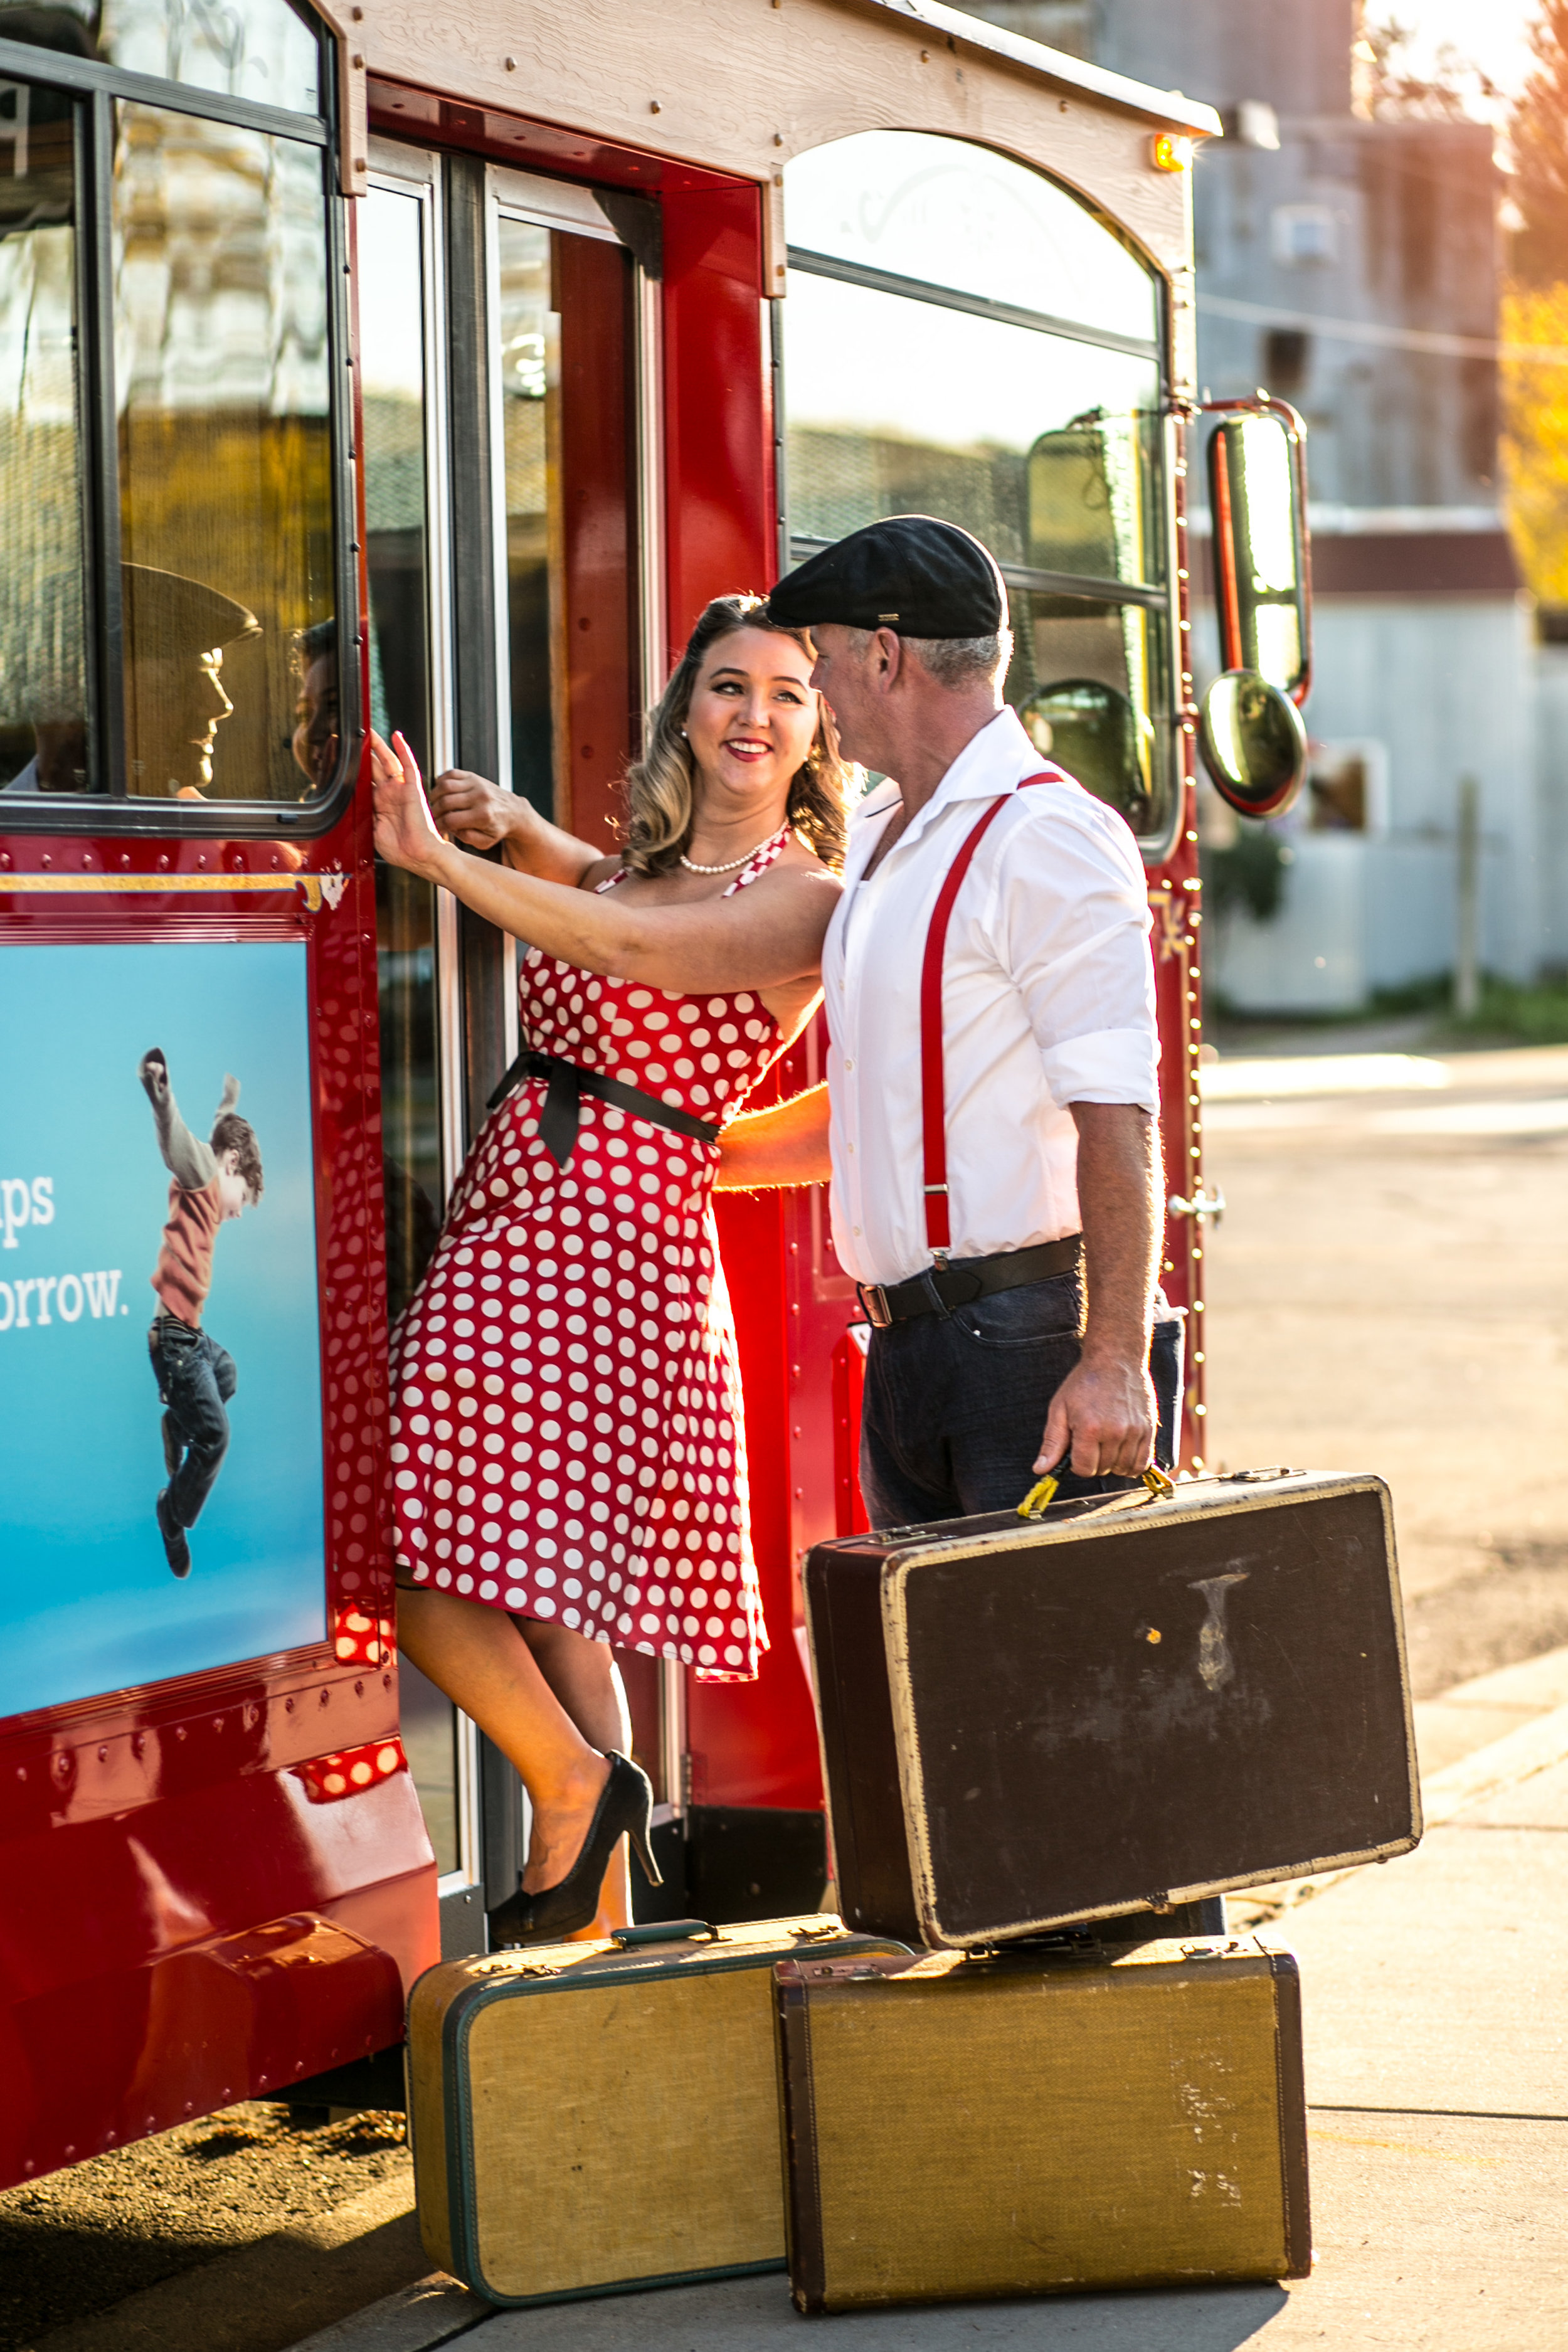 An engaged couple circa 1940's travels on the Stillwater MN Trolley